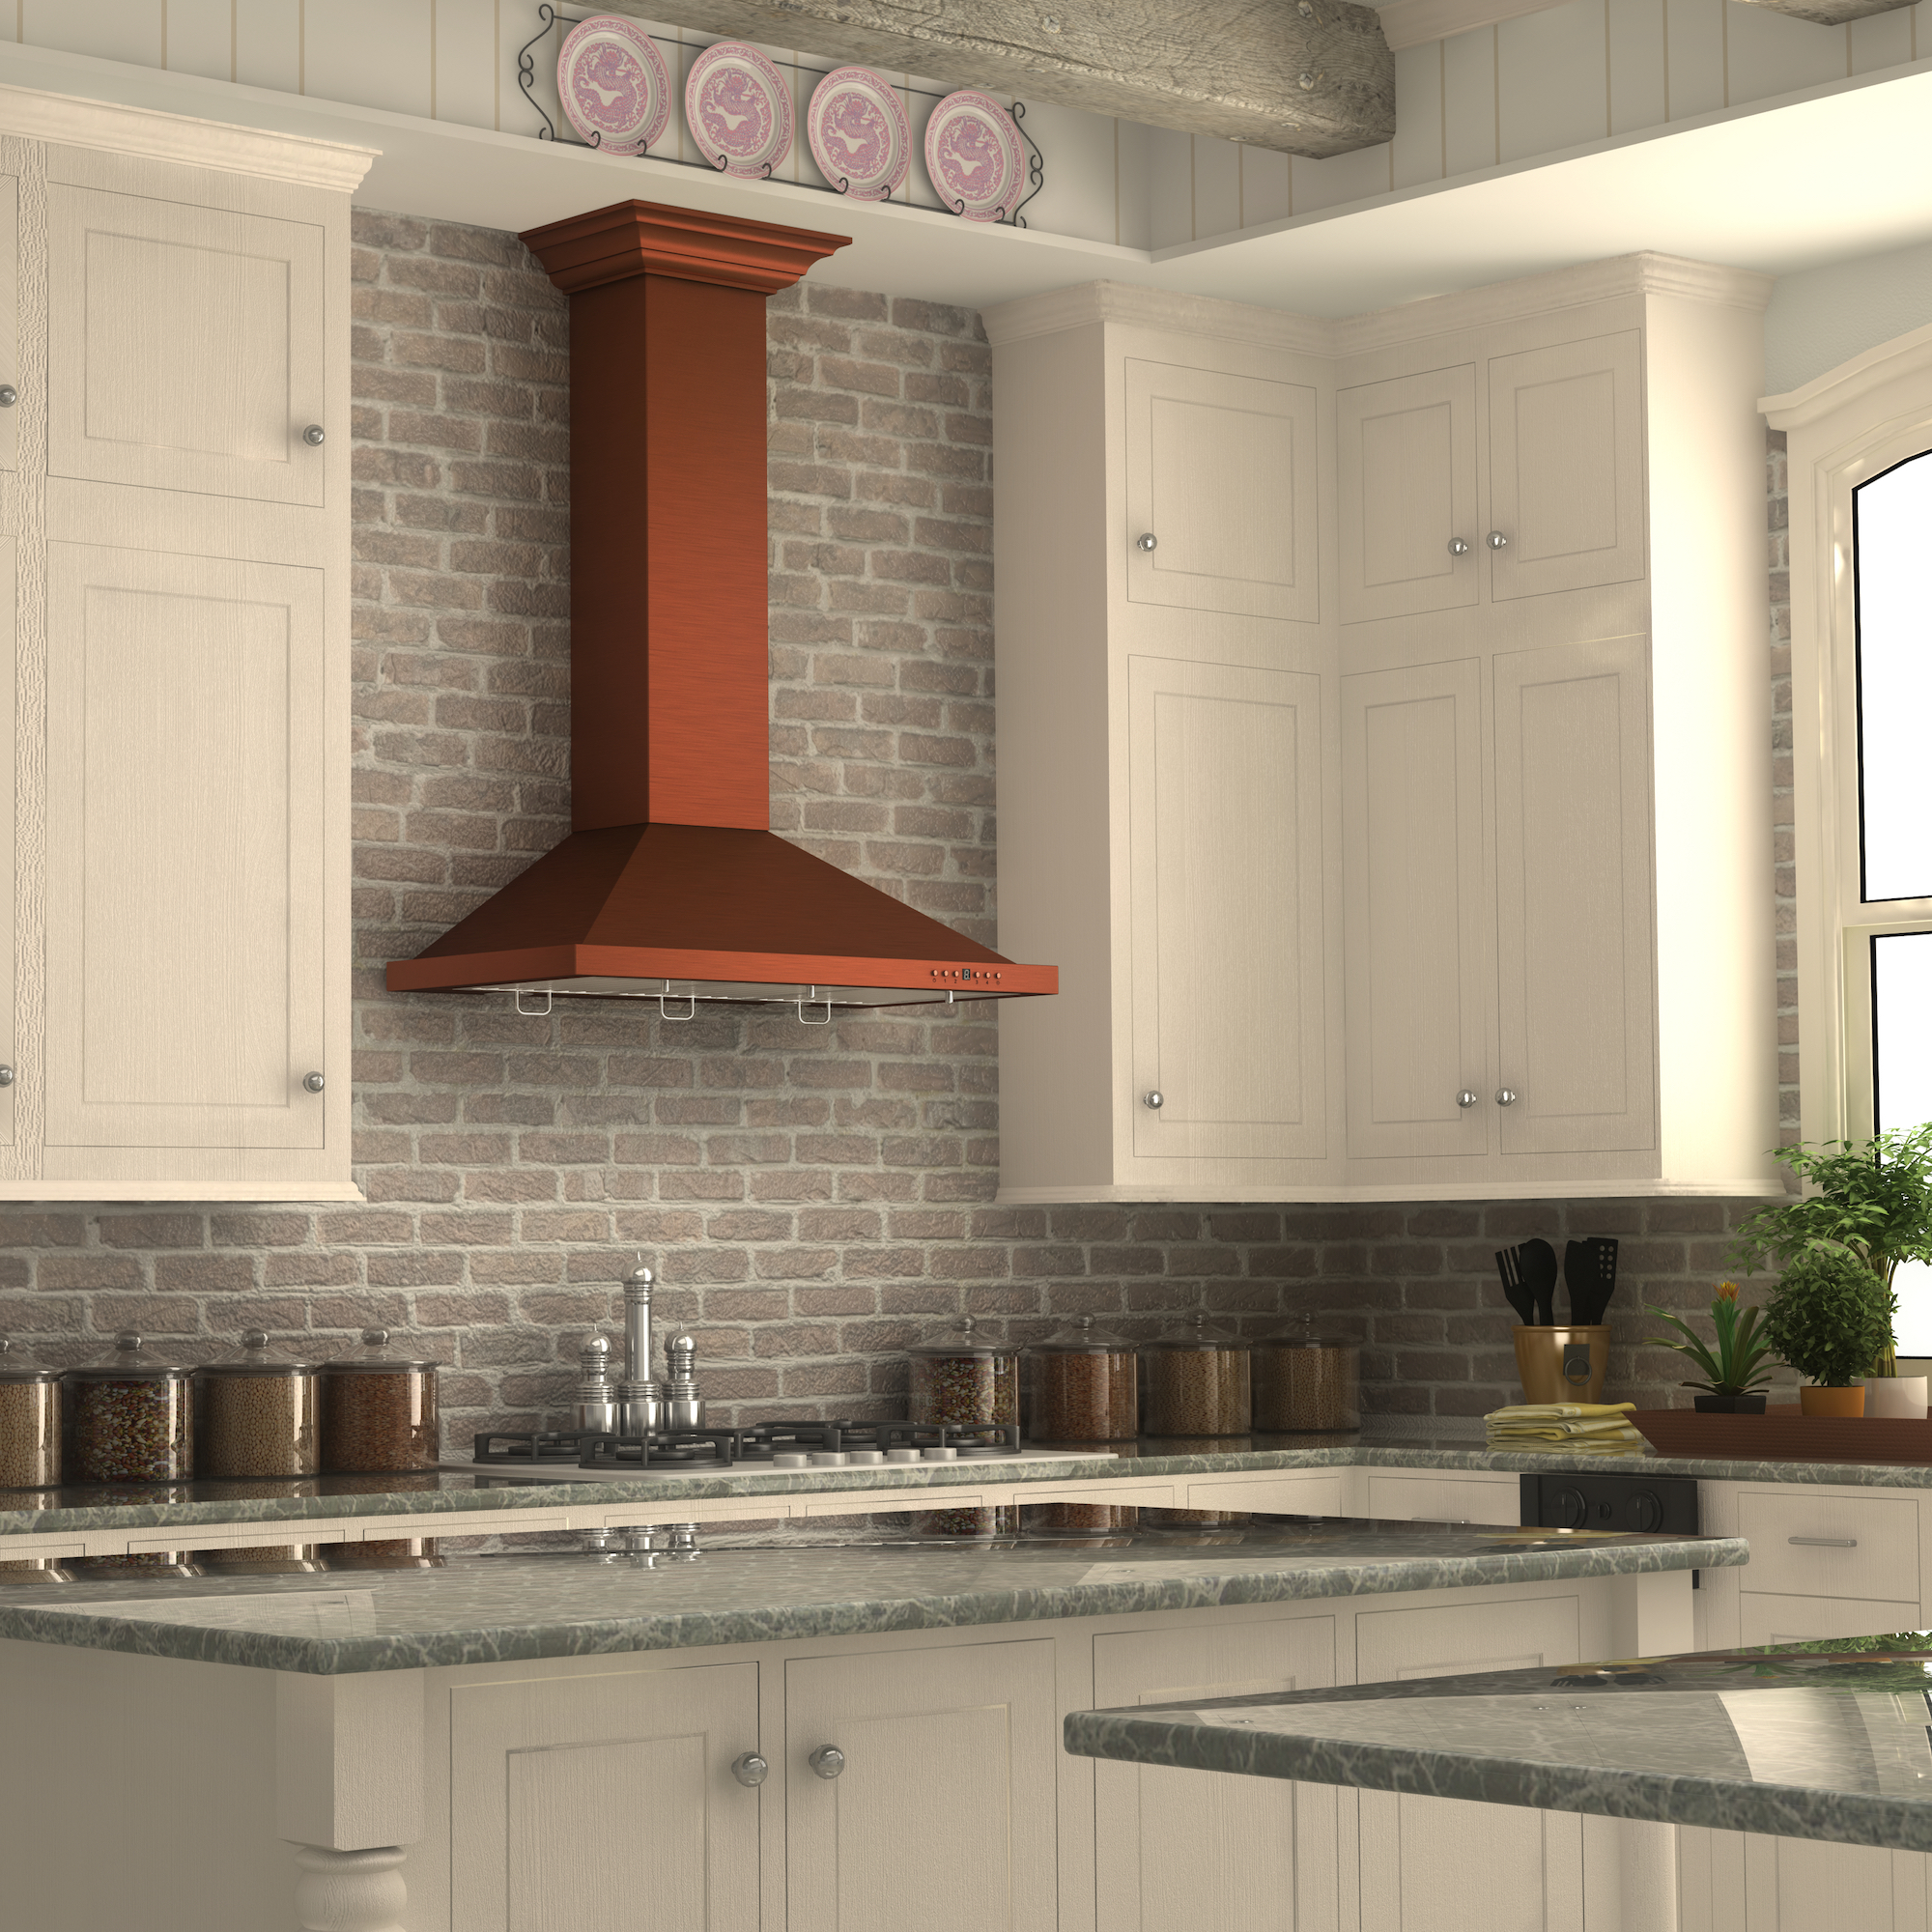 zline-copper-wall-mounted-range-hood-8KBC-kitchen 1.jpg